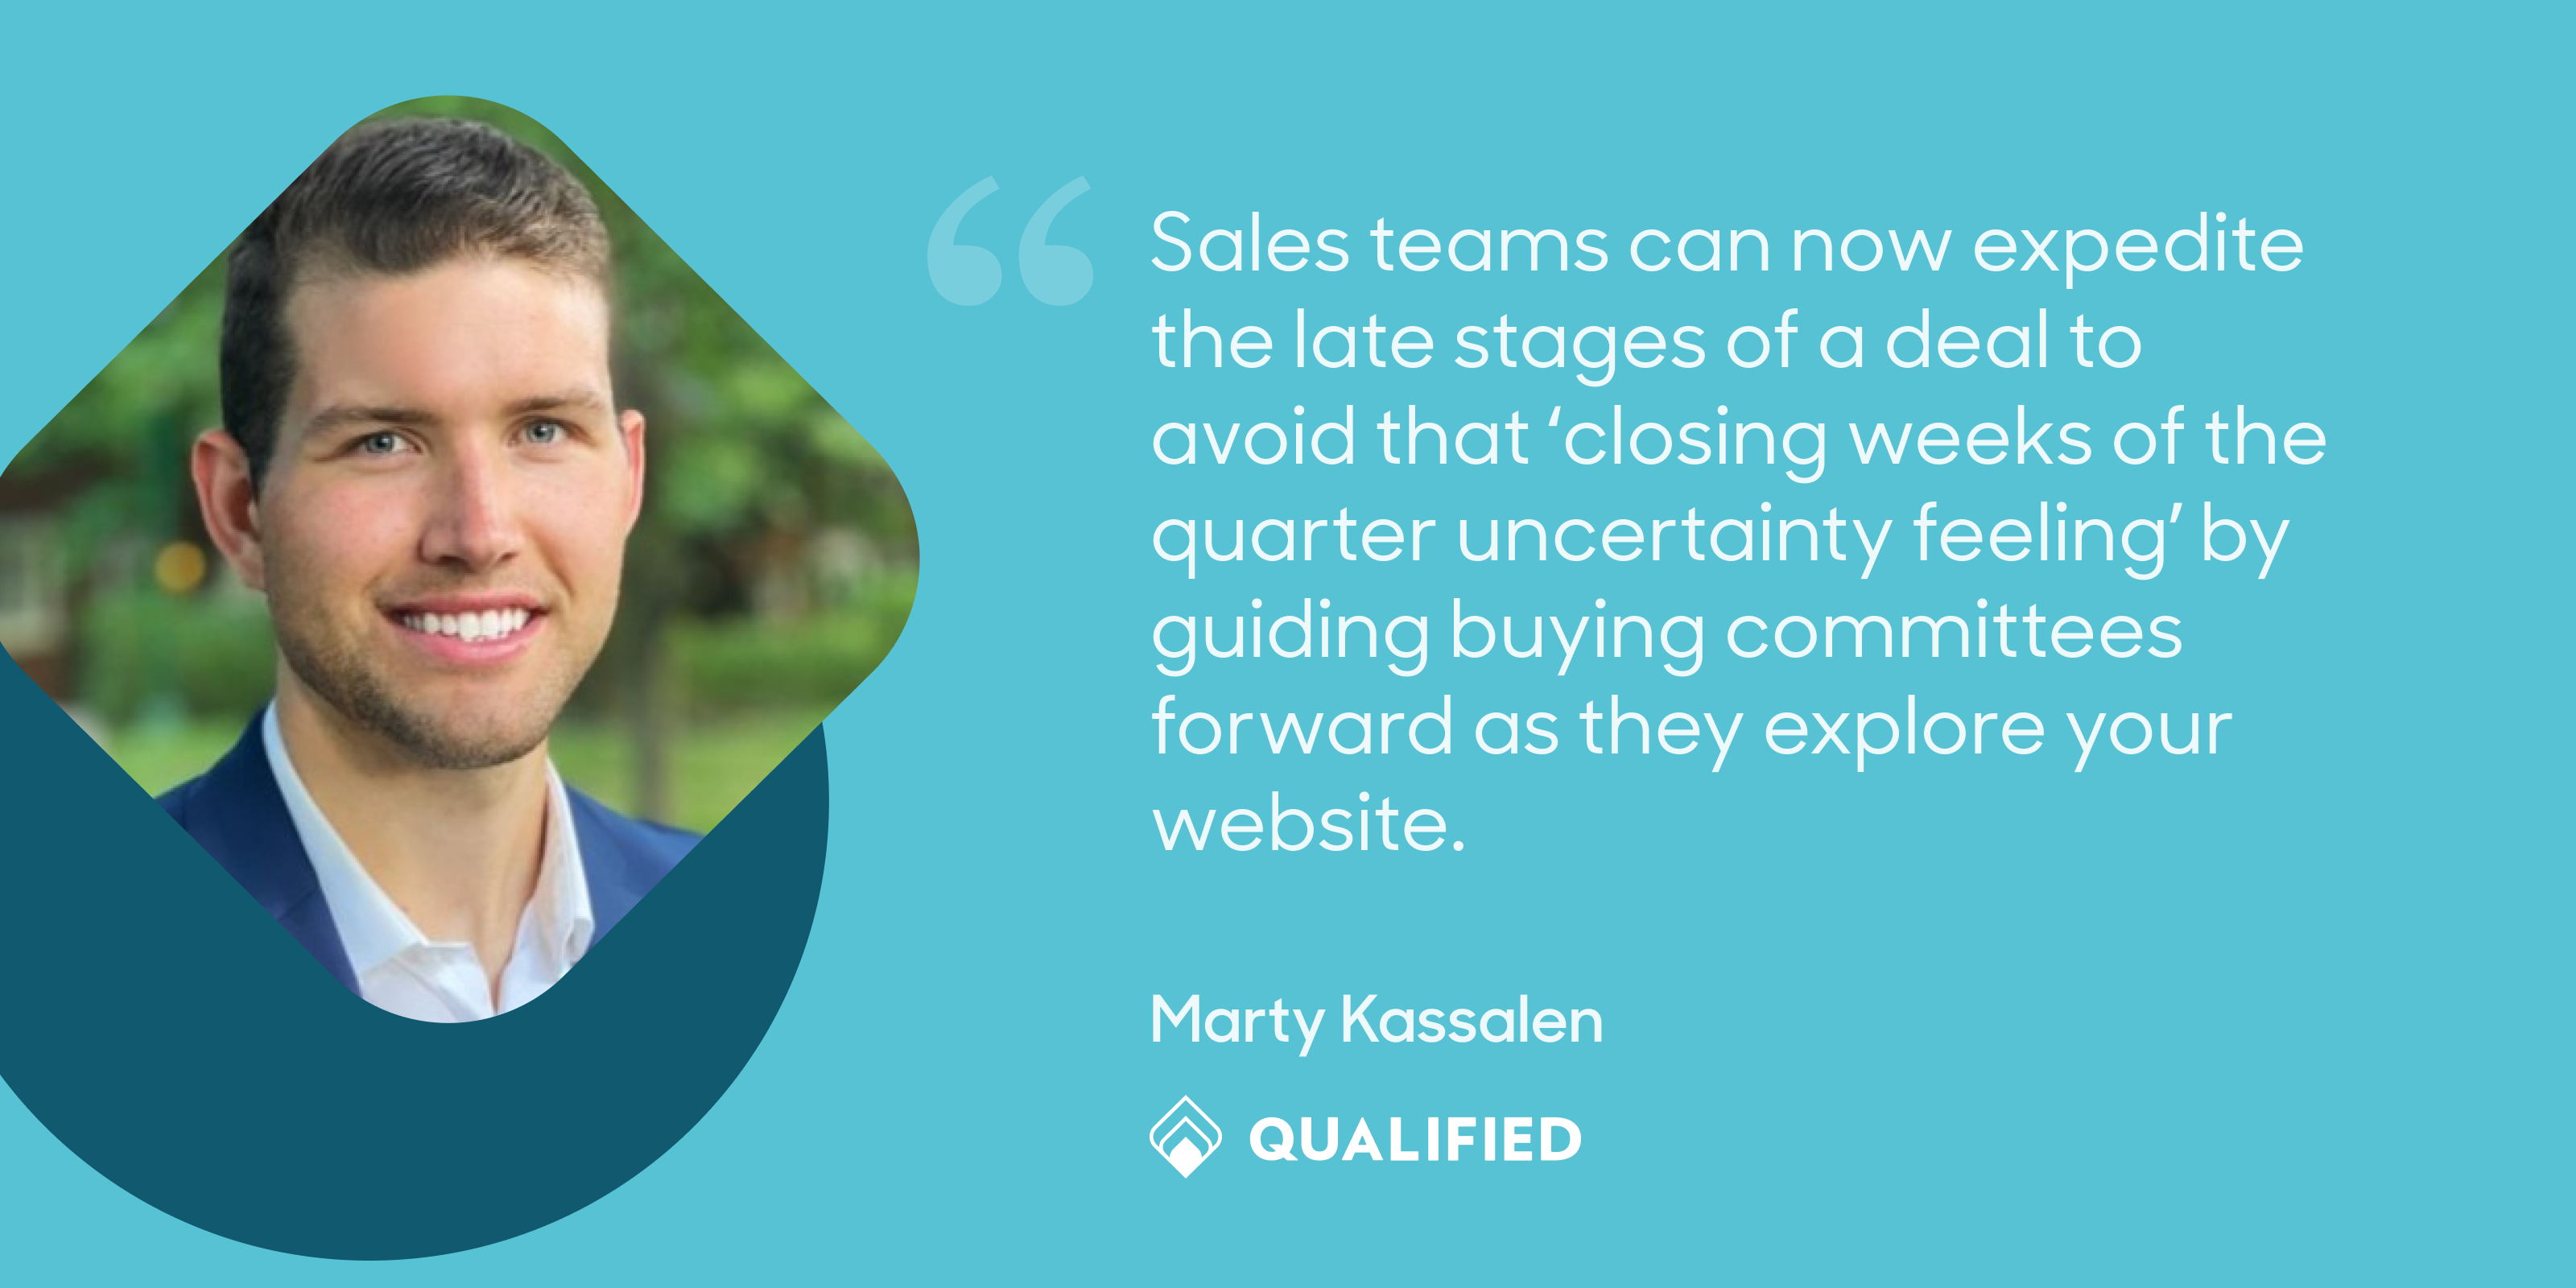 Marty Kassalen, Qualified Sales Rep, shares how conversational sales and marketing help sellers close deals